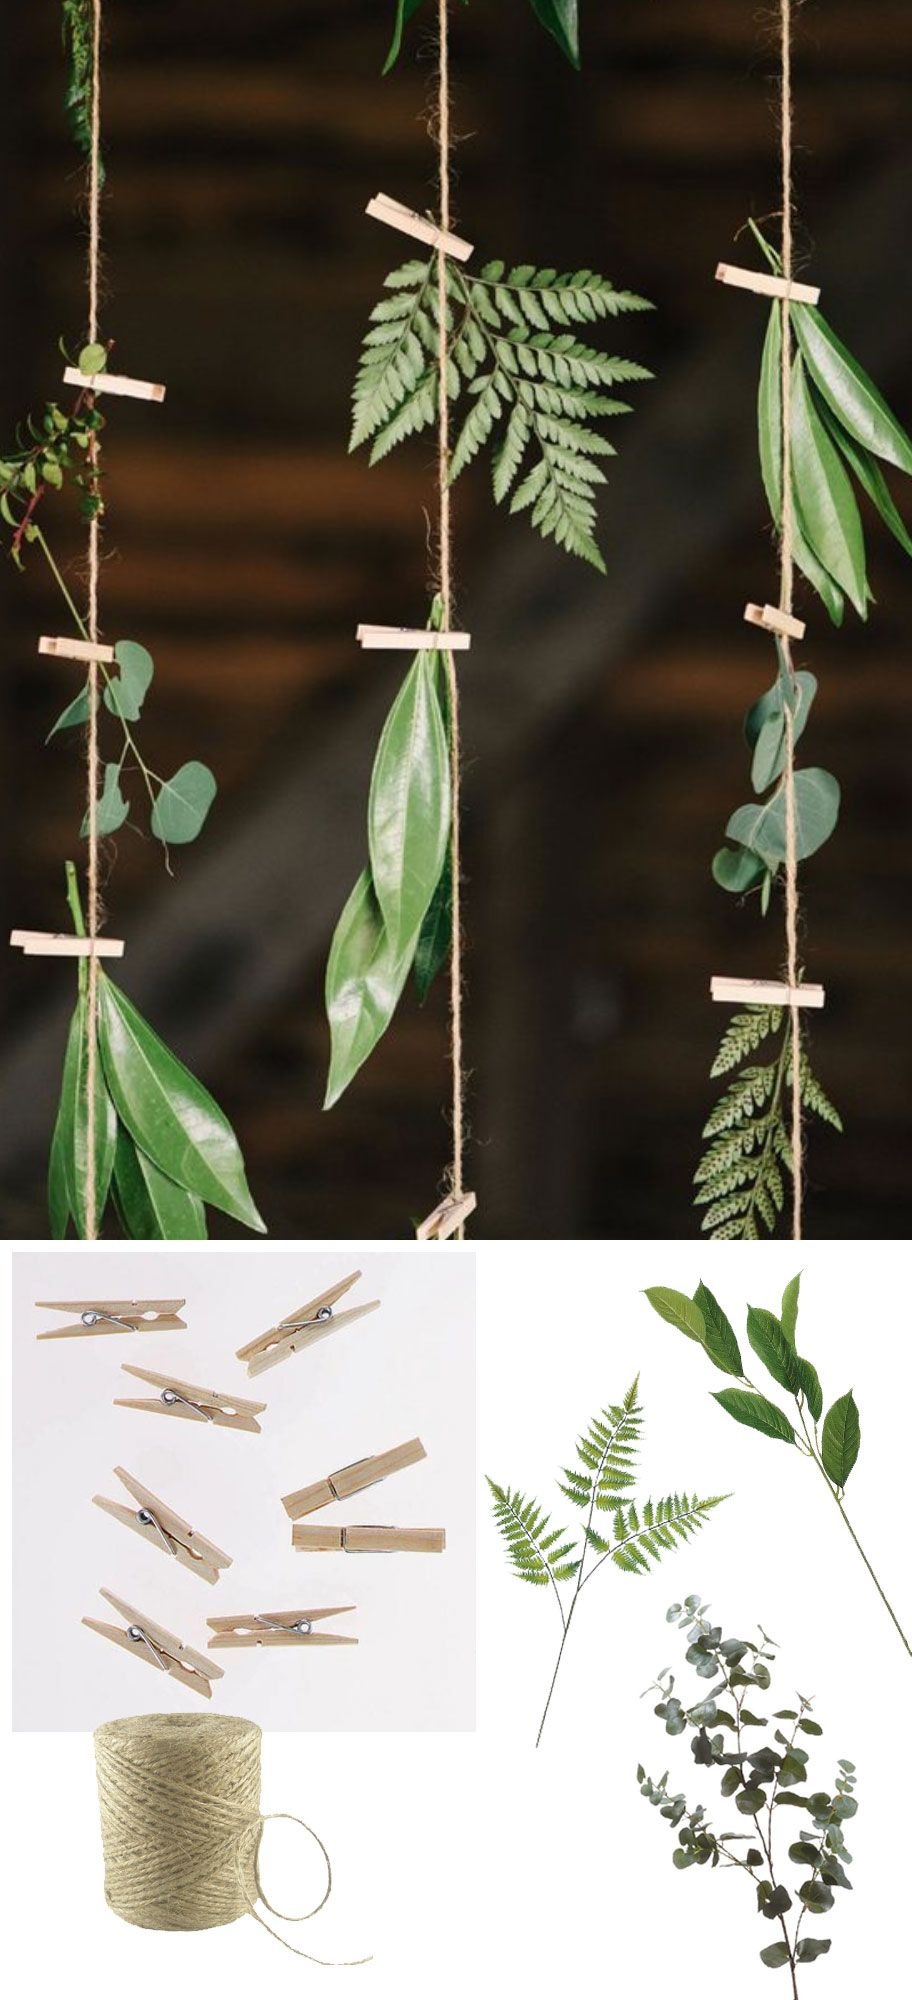 Diy greenery hanging backdrop with twine clothespins and faux